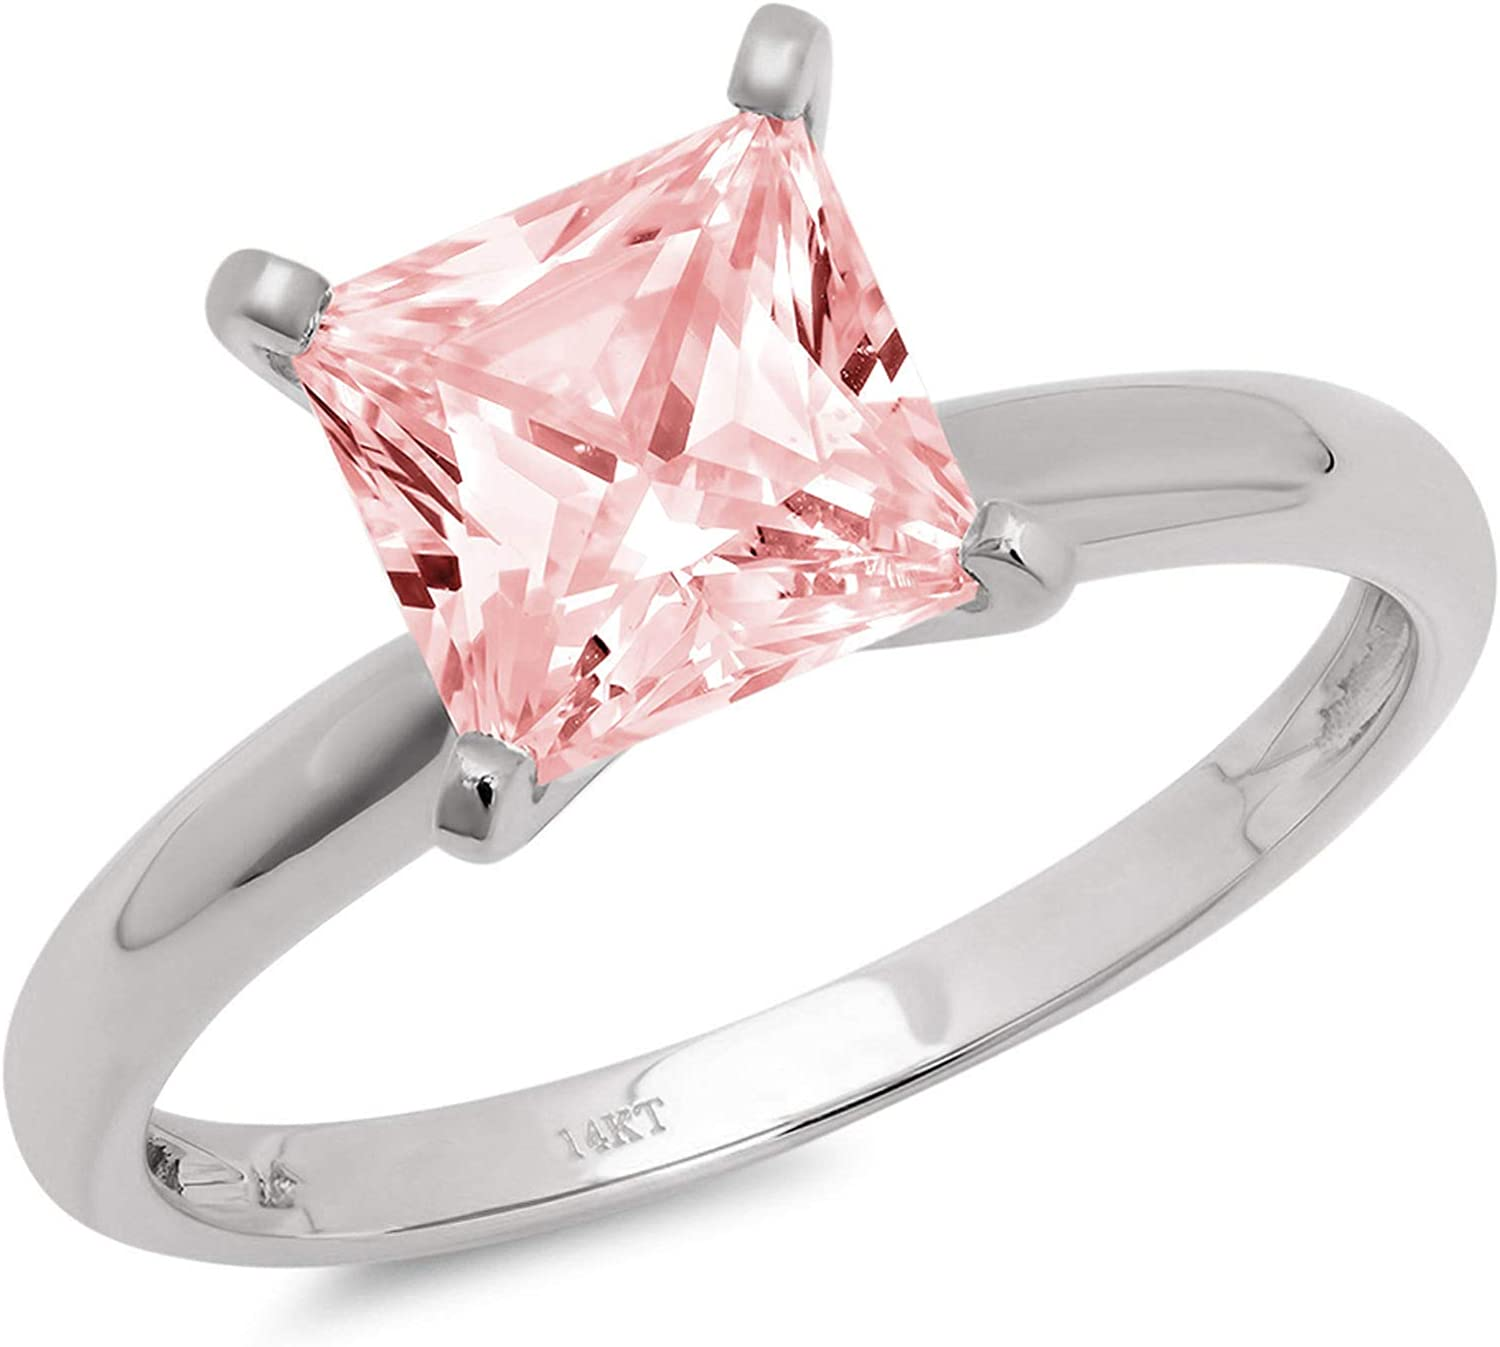 1.4ct Brilliant Princess Cut Solitaire Pink Simulated Diamond Cubic Zirconia Ideal VVS1 D 4-Prong Engagement Wedding Bridal Promise Anniversary Ring Solid 14k White Gold for Women